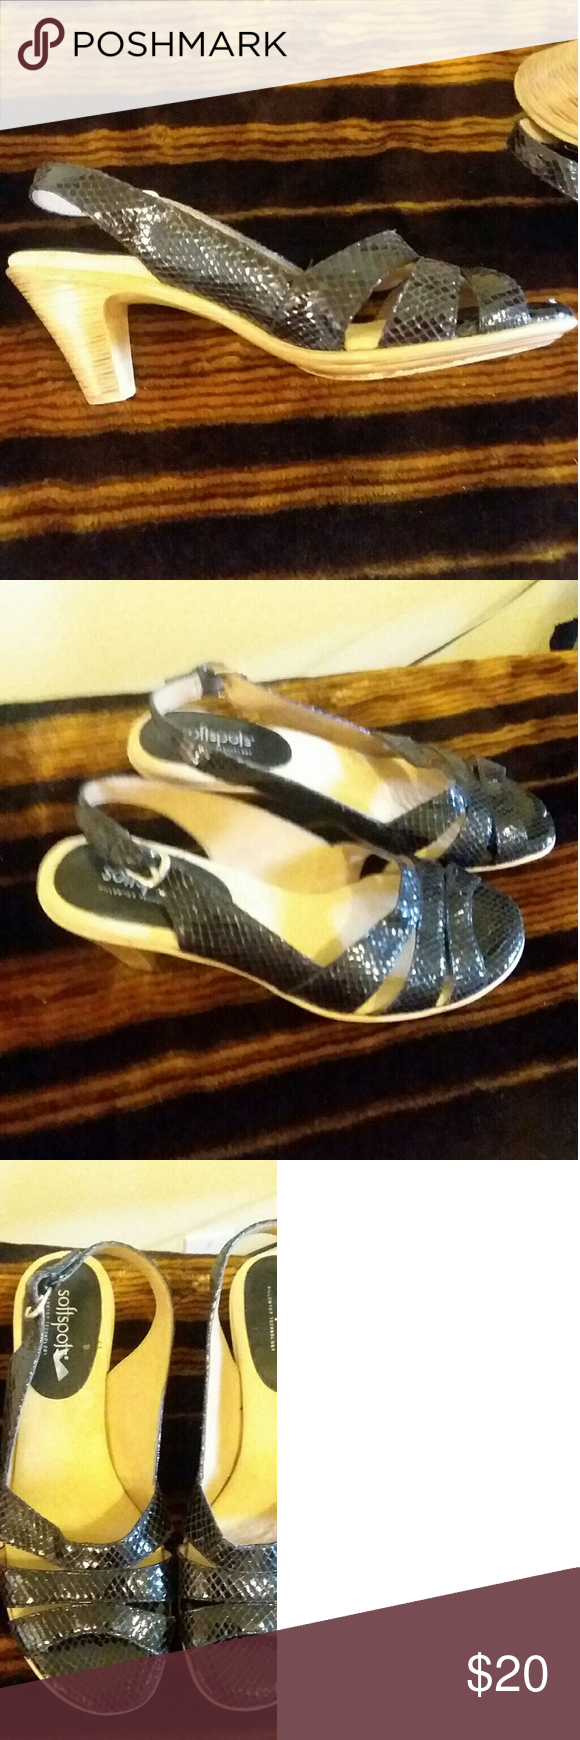 f24421bf4f Soft spot black flats Beautiful Black flats used but excellent condition. Softspots  Shoes Sandals